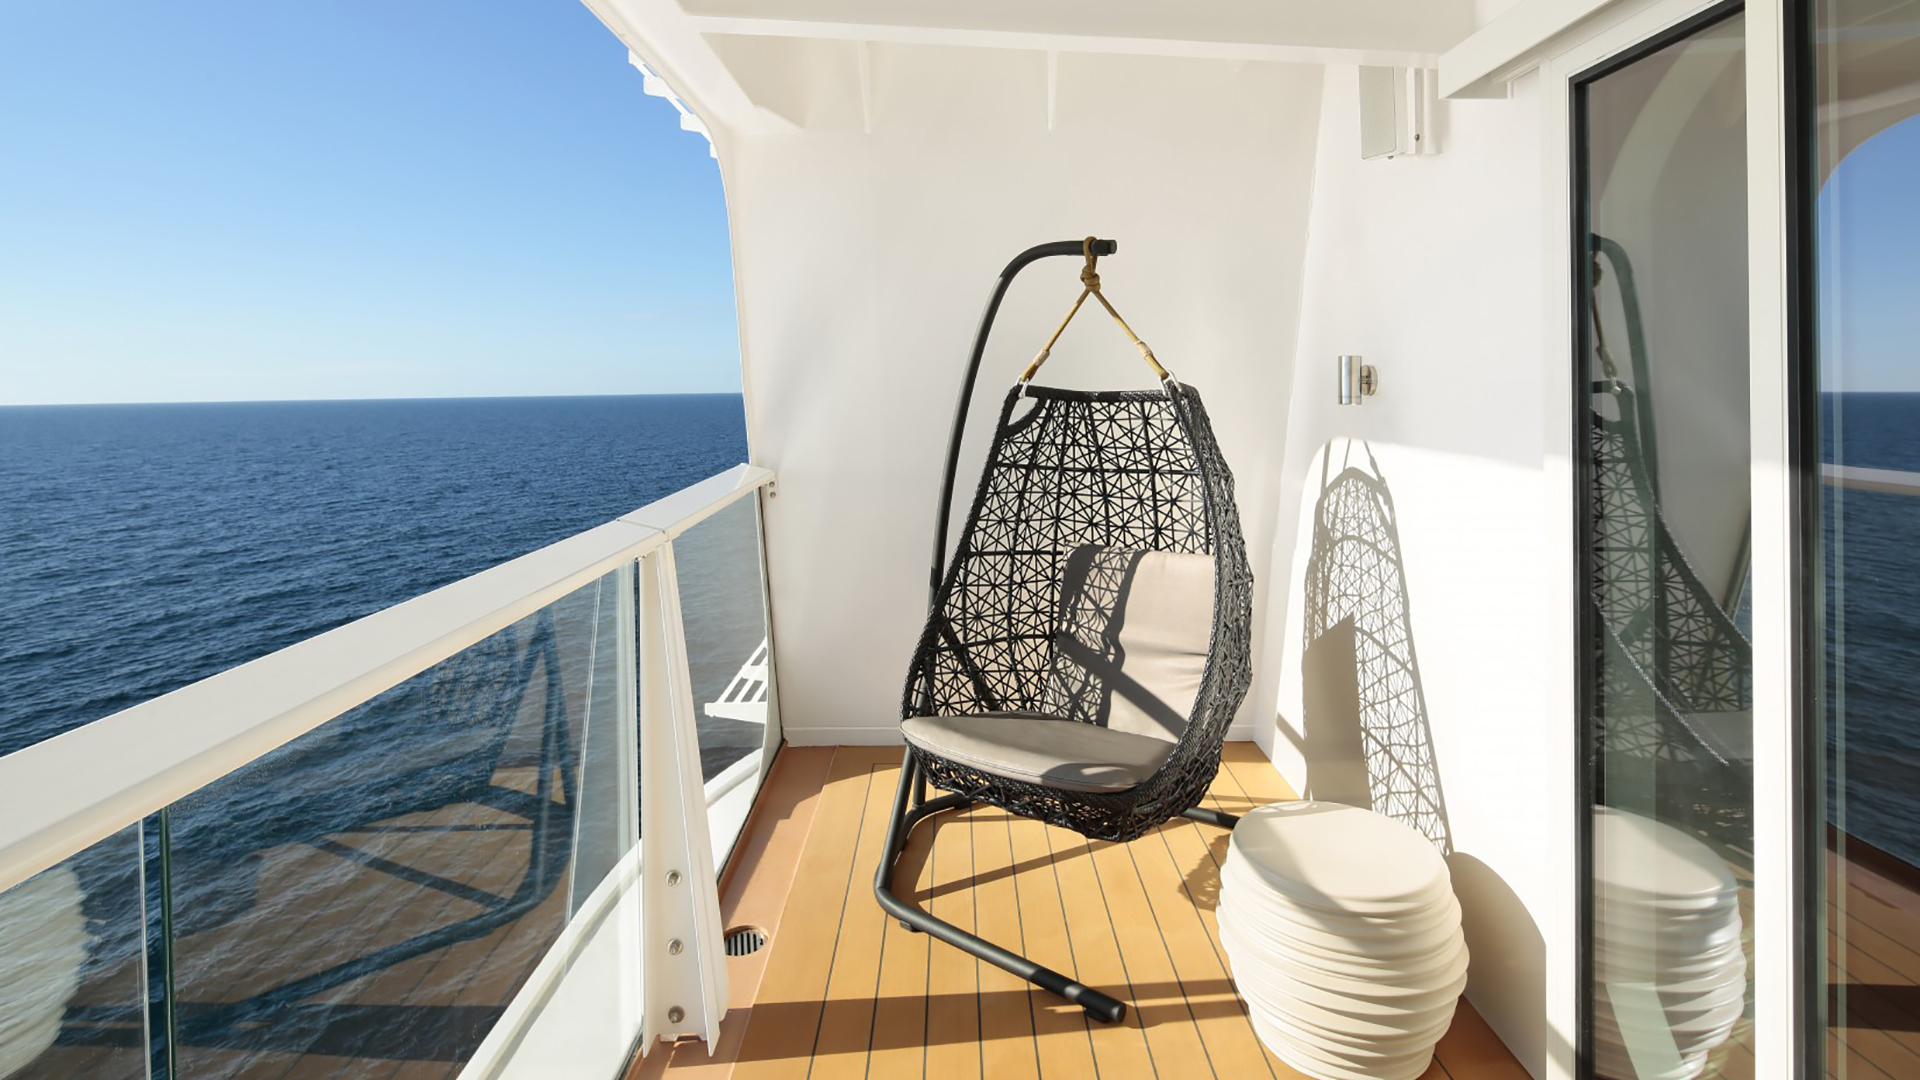 Hanging chair on a cruise balcony. Virtual background to use on Zoom, Microsoft Teams, Skype, Google Meet, WebEx or any other compatible app.